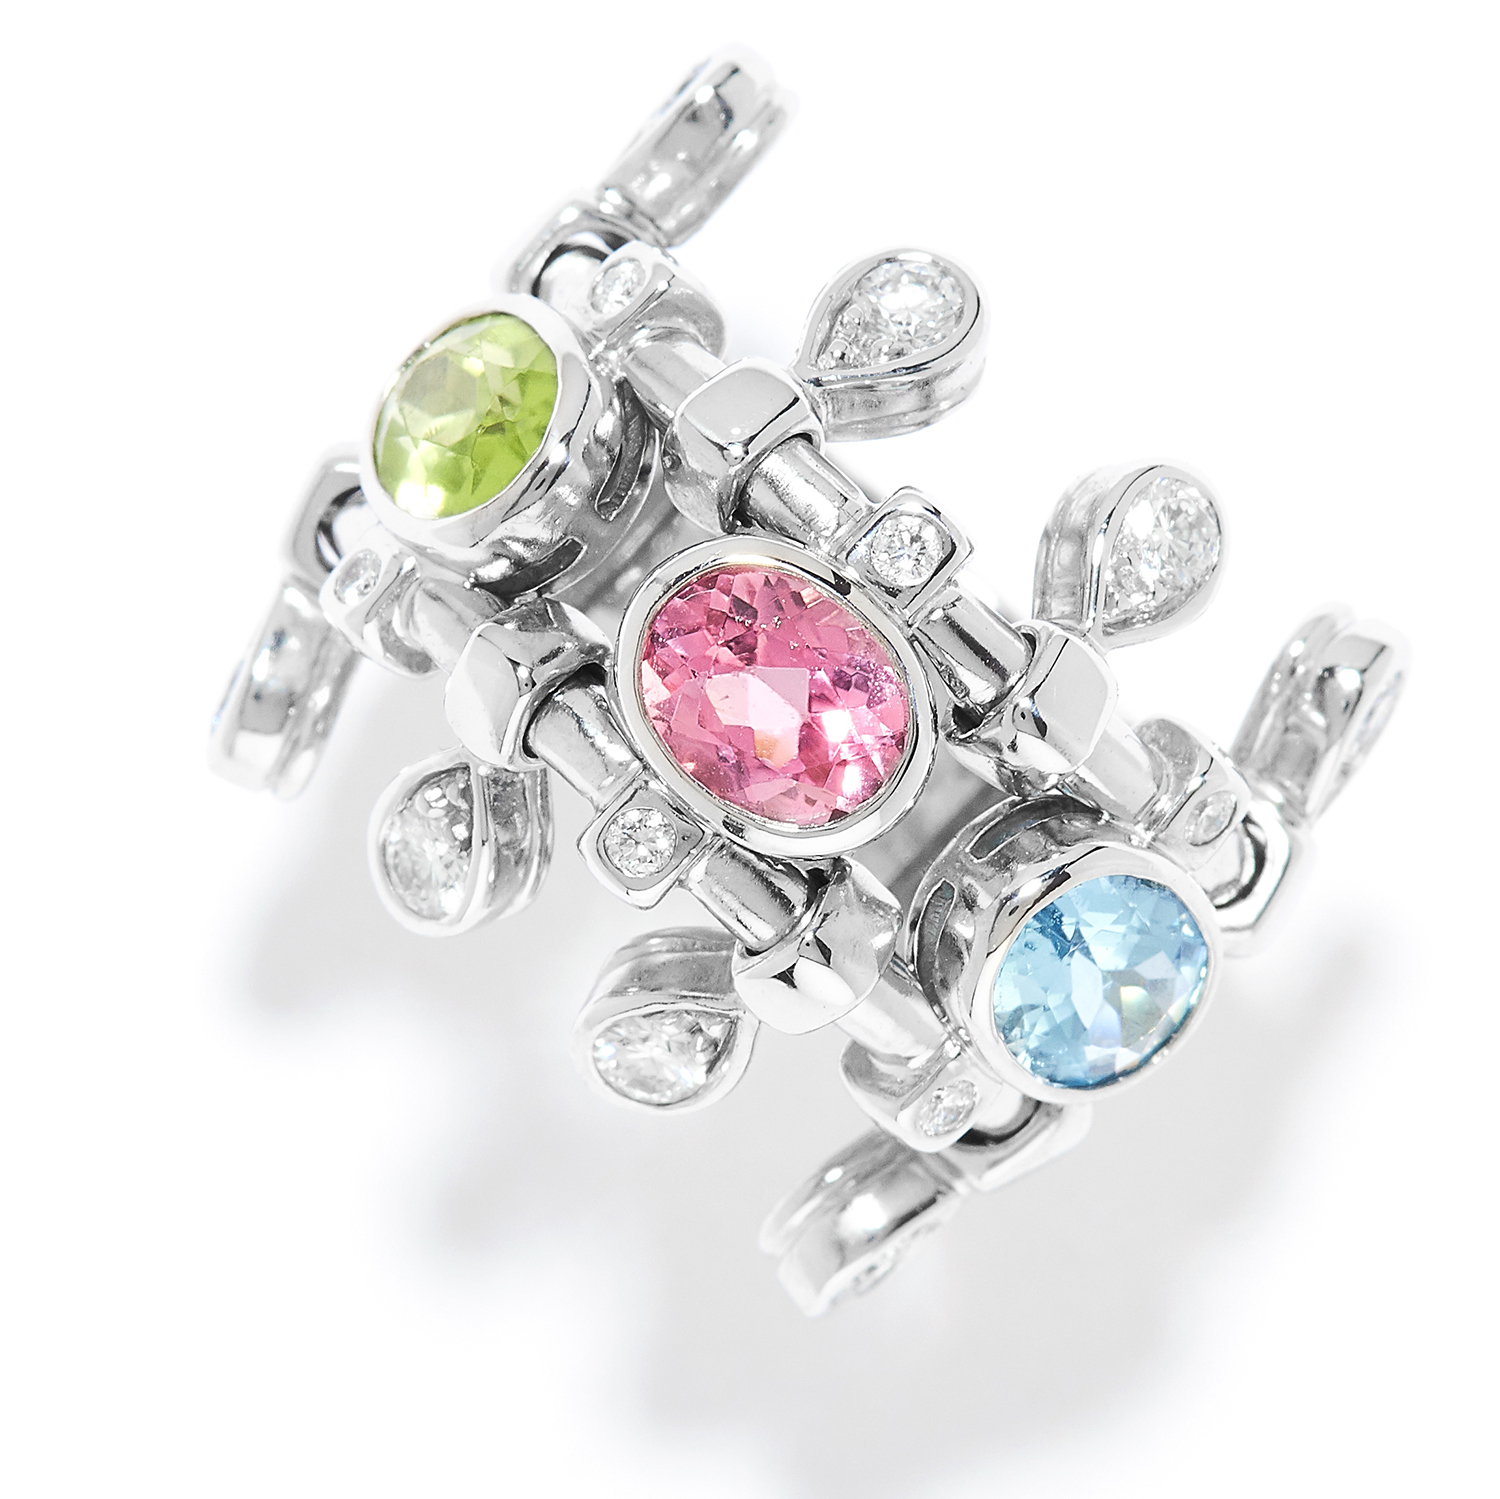 AN AQUAMARINE, TOURMALINE, PERIDOT AND DIAMOND RING, DIOR in 18ct white gold set with oval cut